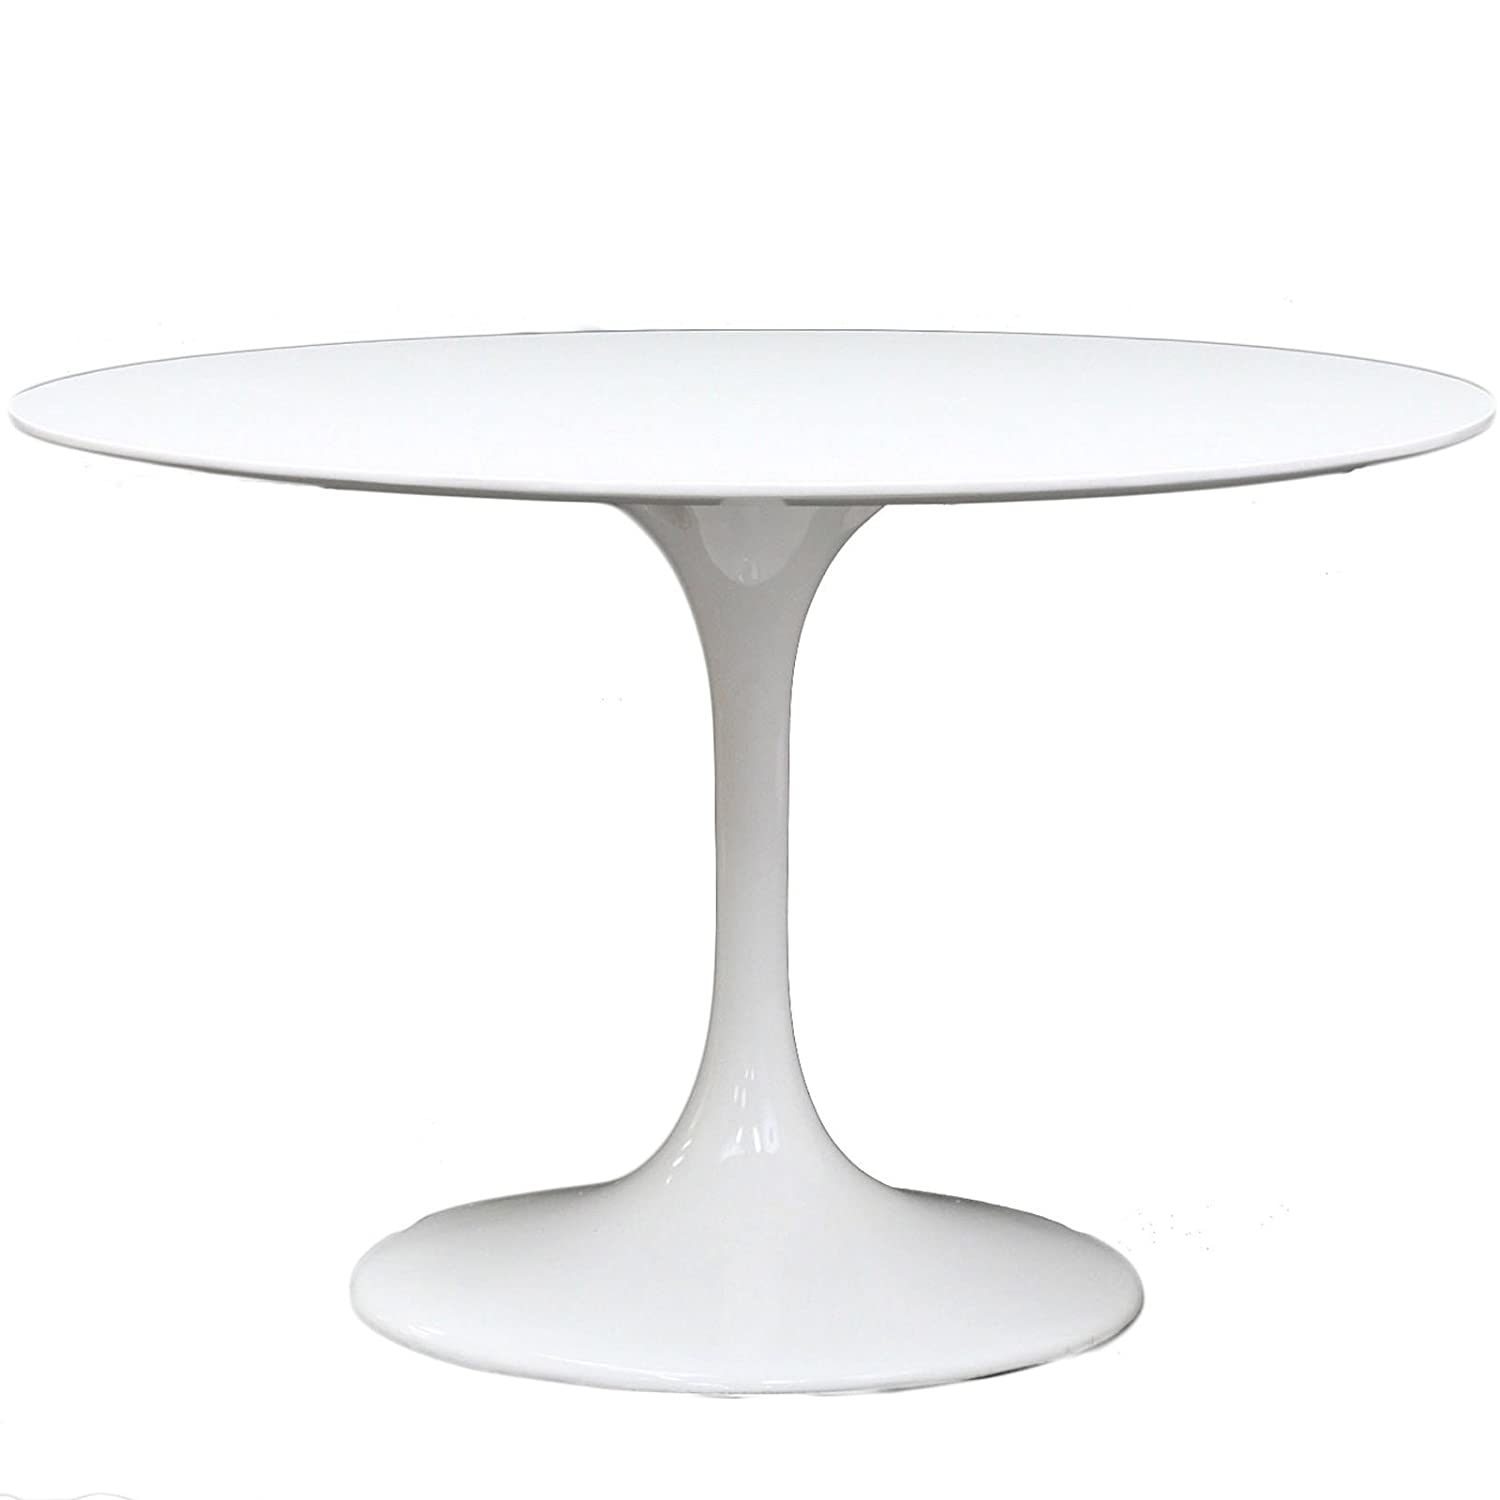 amazoncom modway 40 eero saarinen style tulip dining table kitchen dining - Saarinen Tulip Table